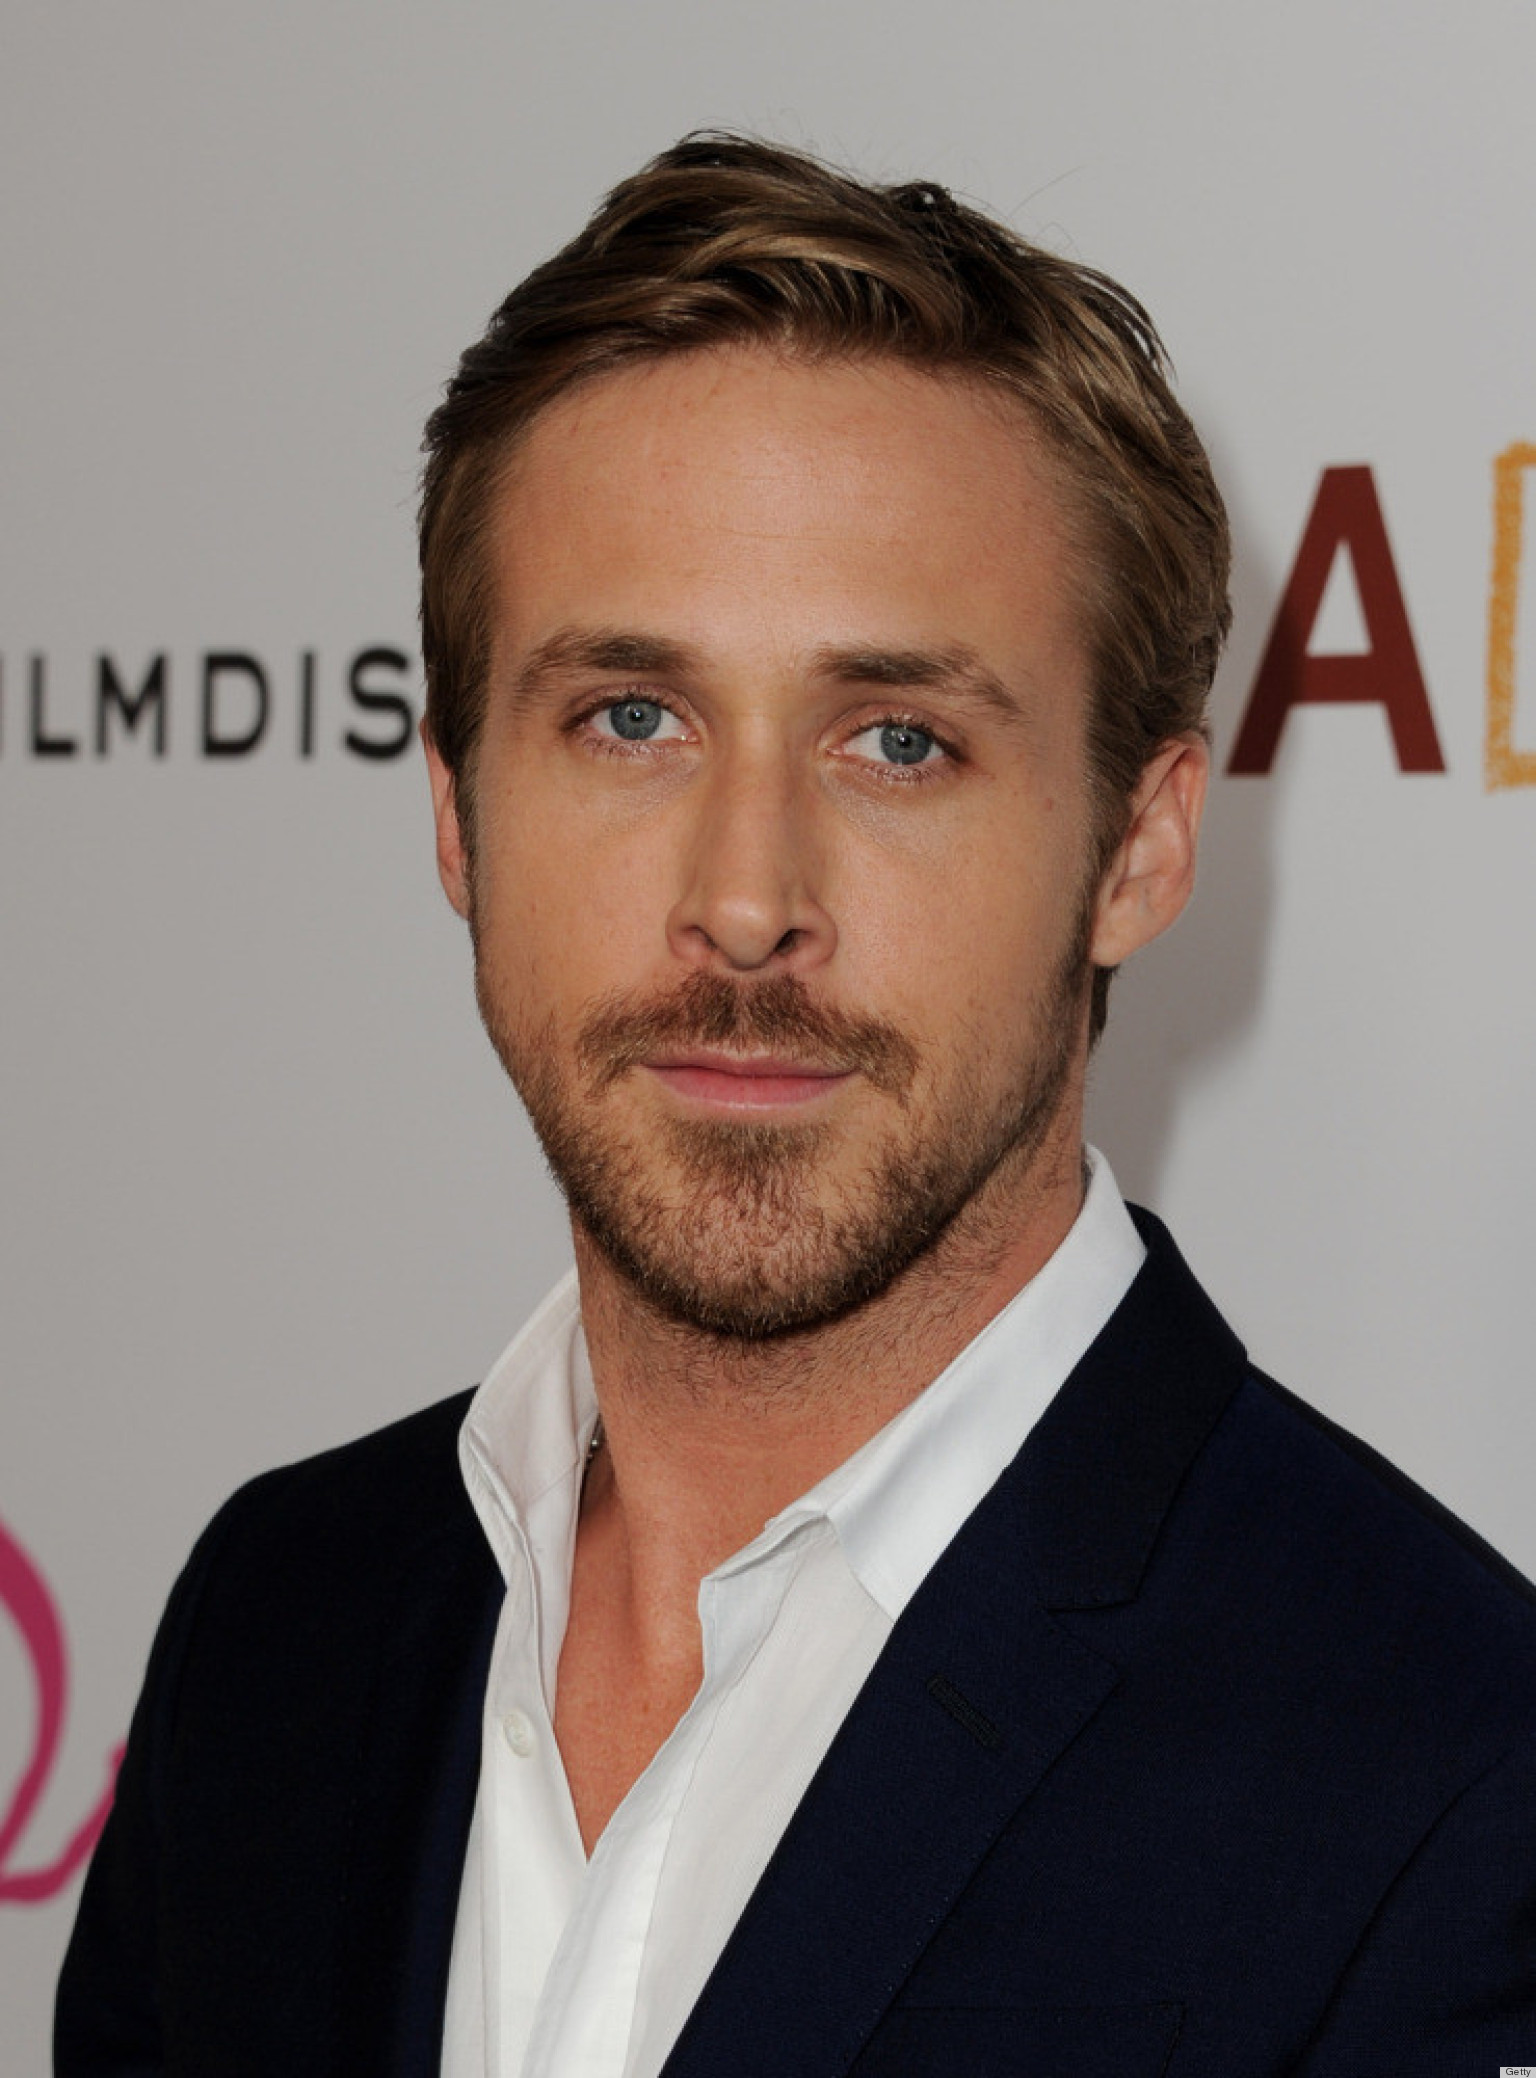 Ryan Gosling Reveals To GQ Australia He Loves To Knit | HuffPost Ryan Gosling